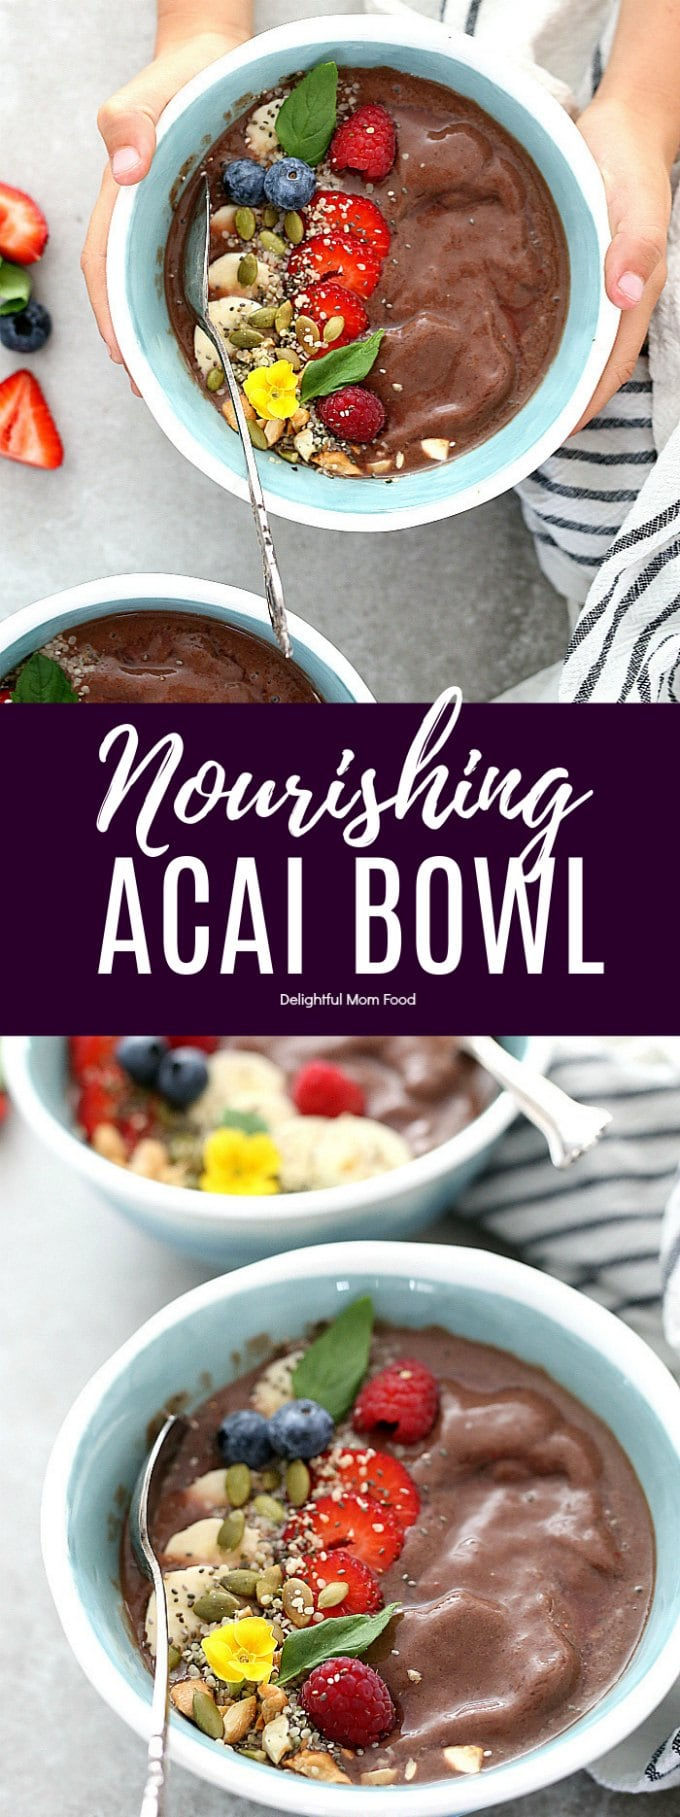 Supercharge mornings healthy and energized with this acai bowl recipe! Acai bowls are a superfood packed with antioxidants and omega vitamins that tastes like dessert! #acai #bowls #acaibowl #recipe #bowl #glutenfree #vegan #dairyfree #healthy #best #fruit | Delightfulmomfood.com